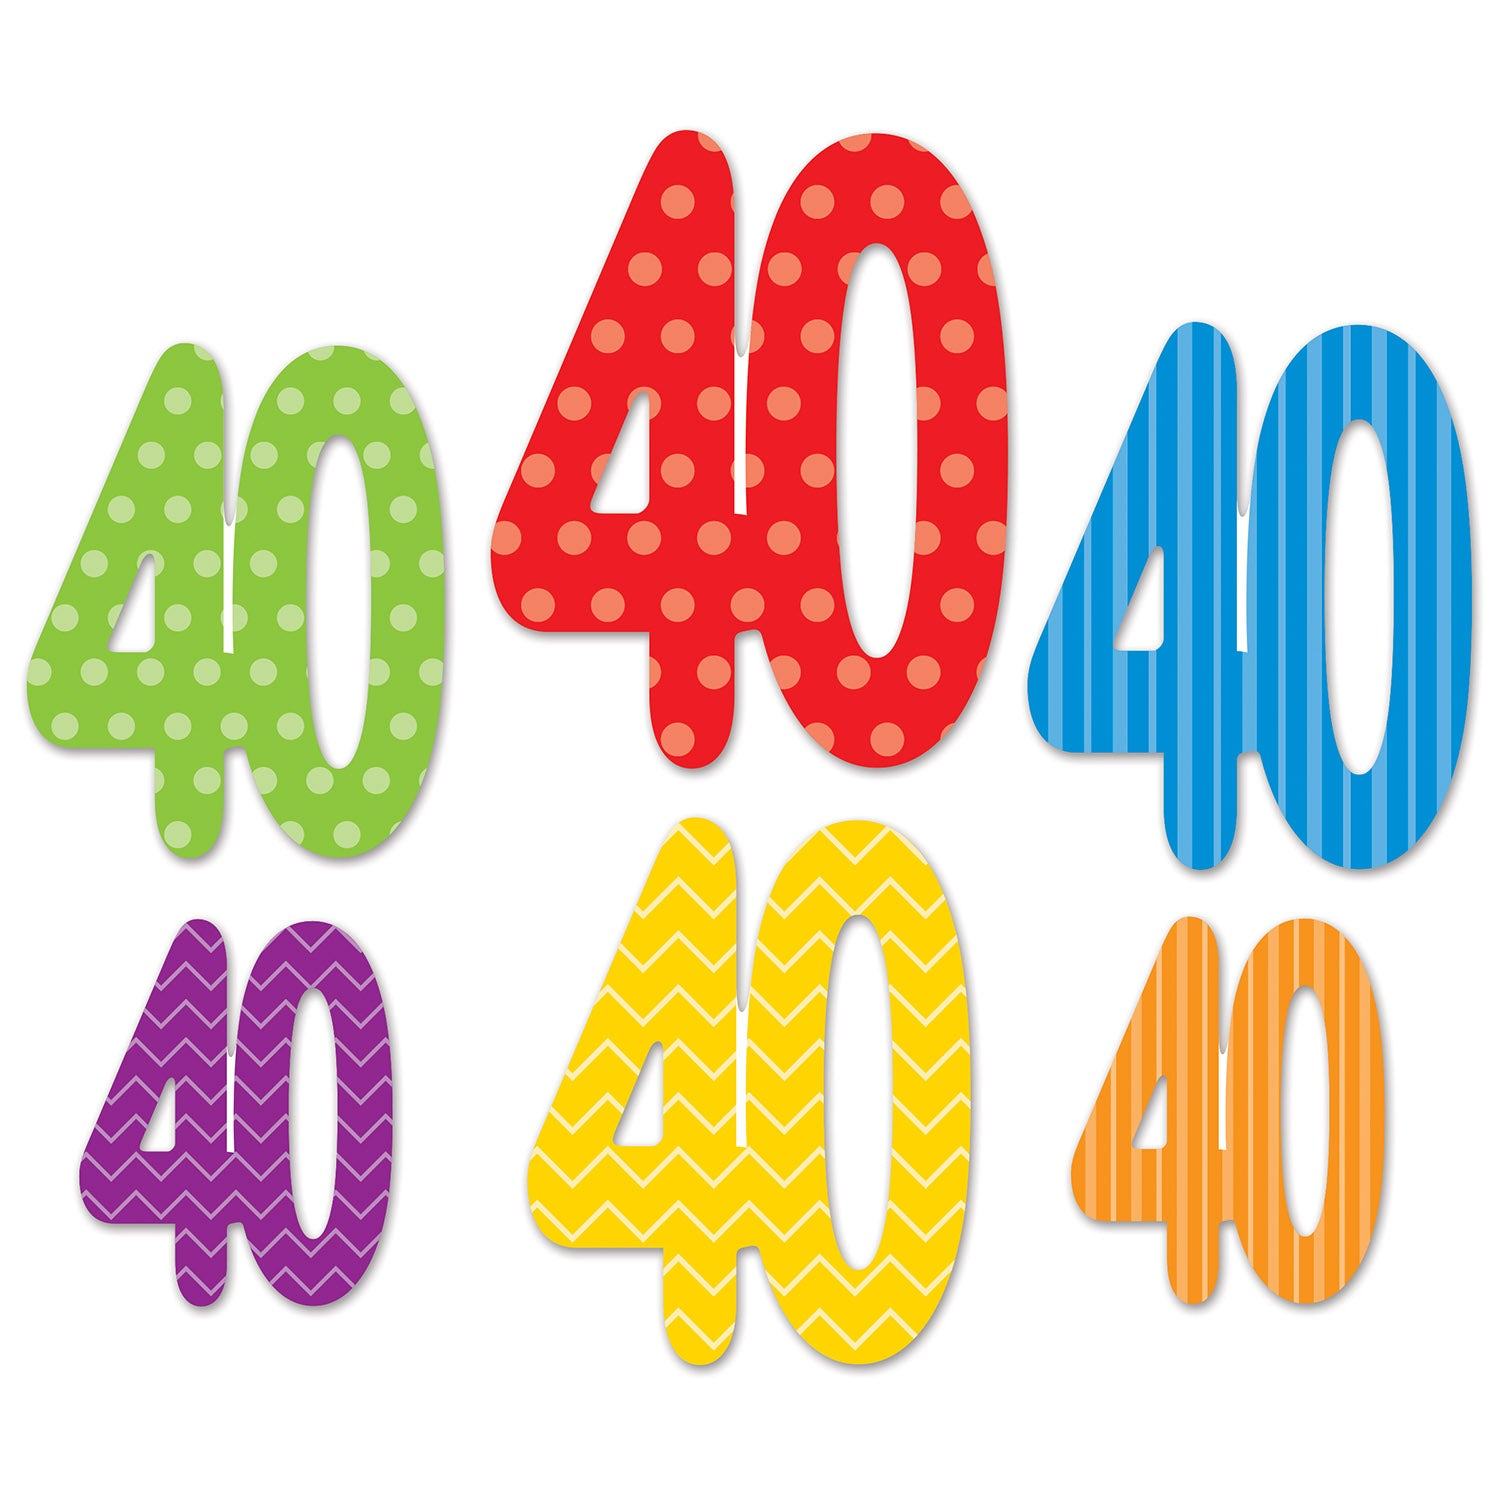 40 Cutouts (6/Pkg) by Beistle - 40th Birthday Party Decorations